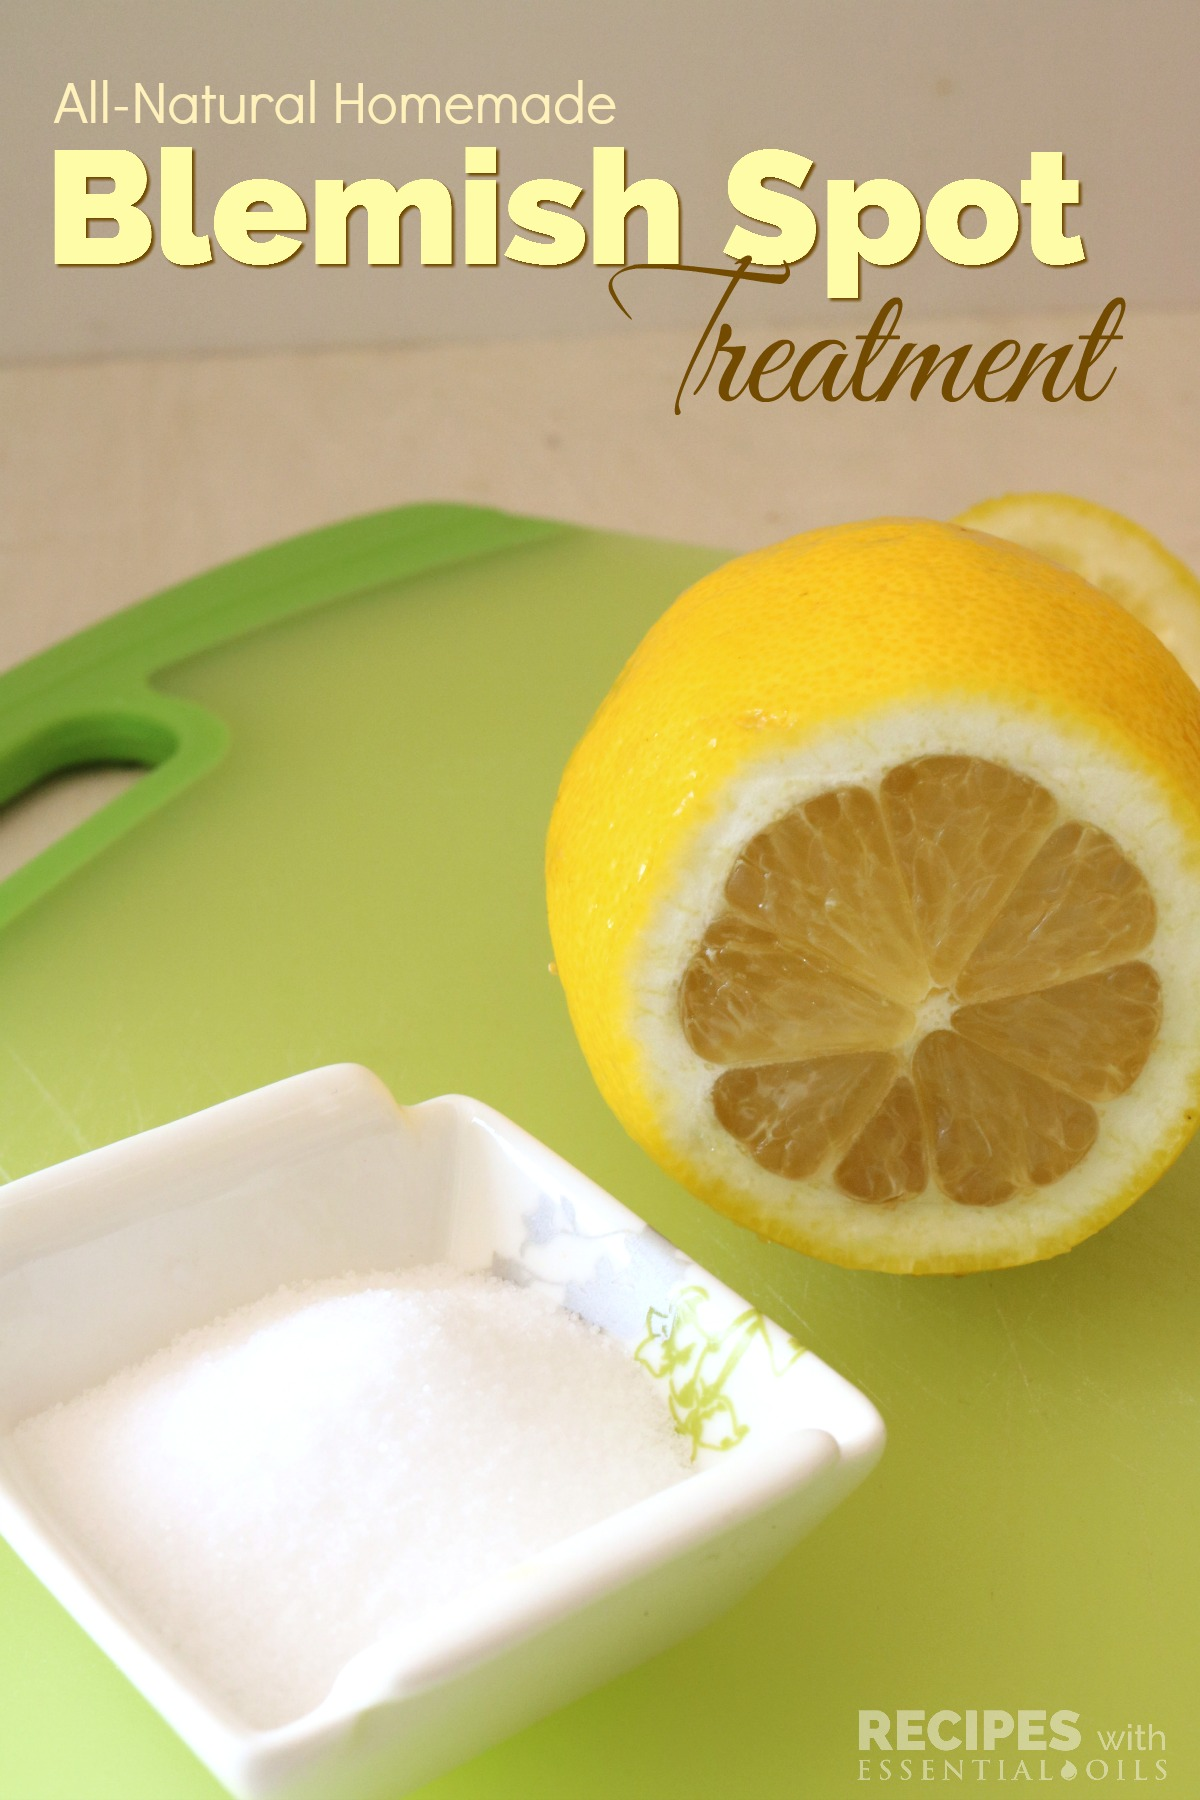 All Natural Homemade Recipe for a Blemish Spot Treatment from RecipeswithEssentialOils.com